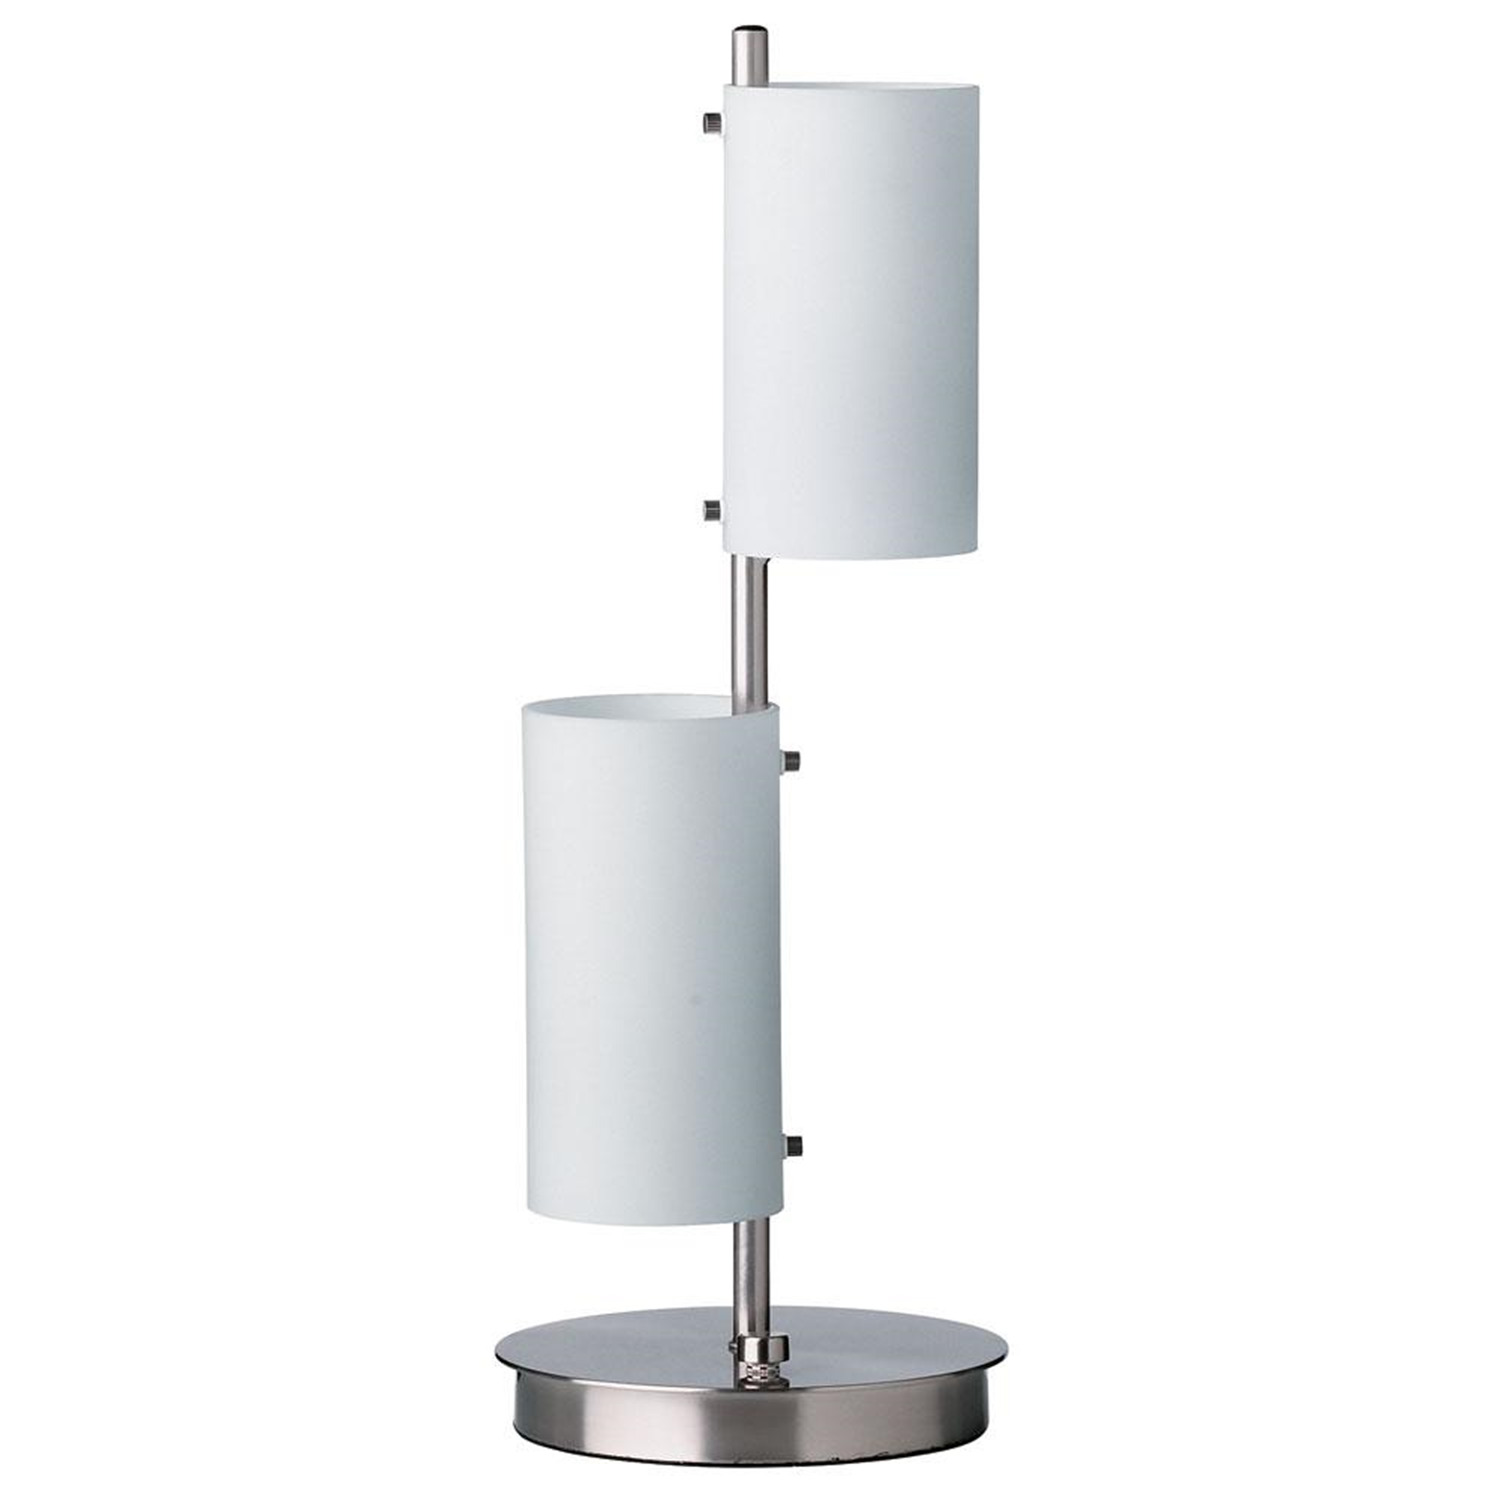 dainolite opal white glass shade table lamp by oj commercedm516 sc. Black Bedroom Furniture Sets. Home Design Ideas